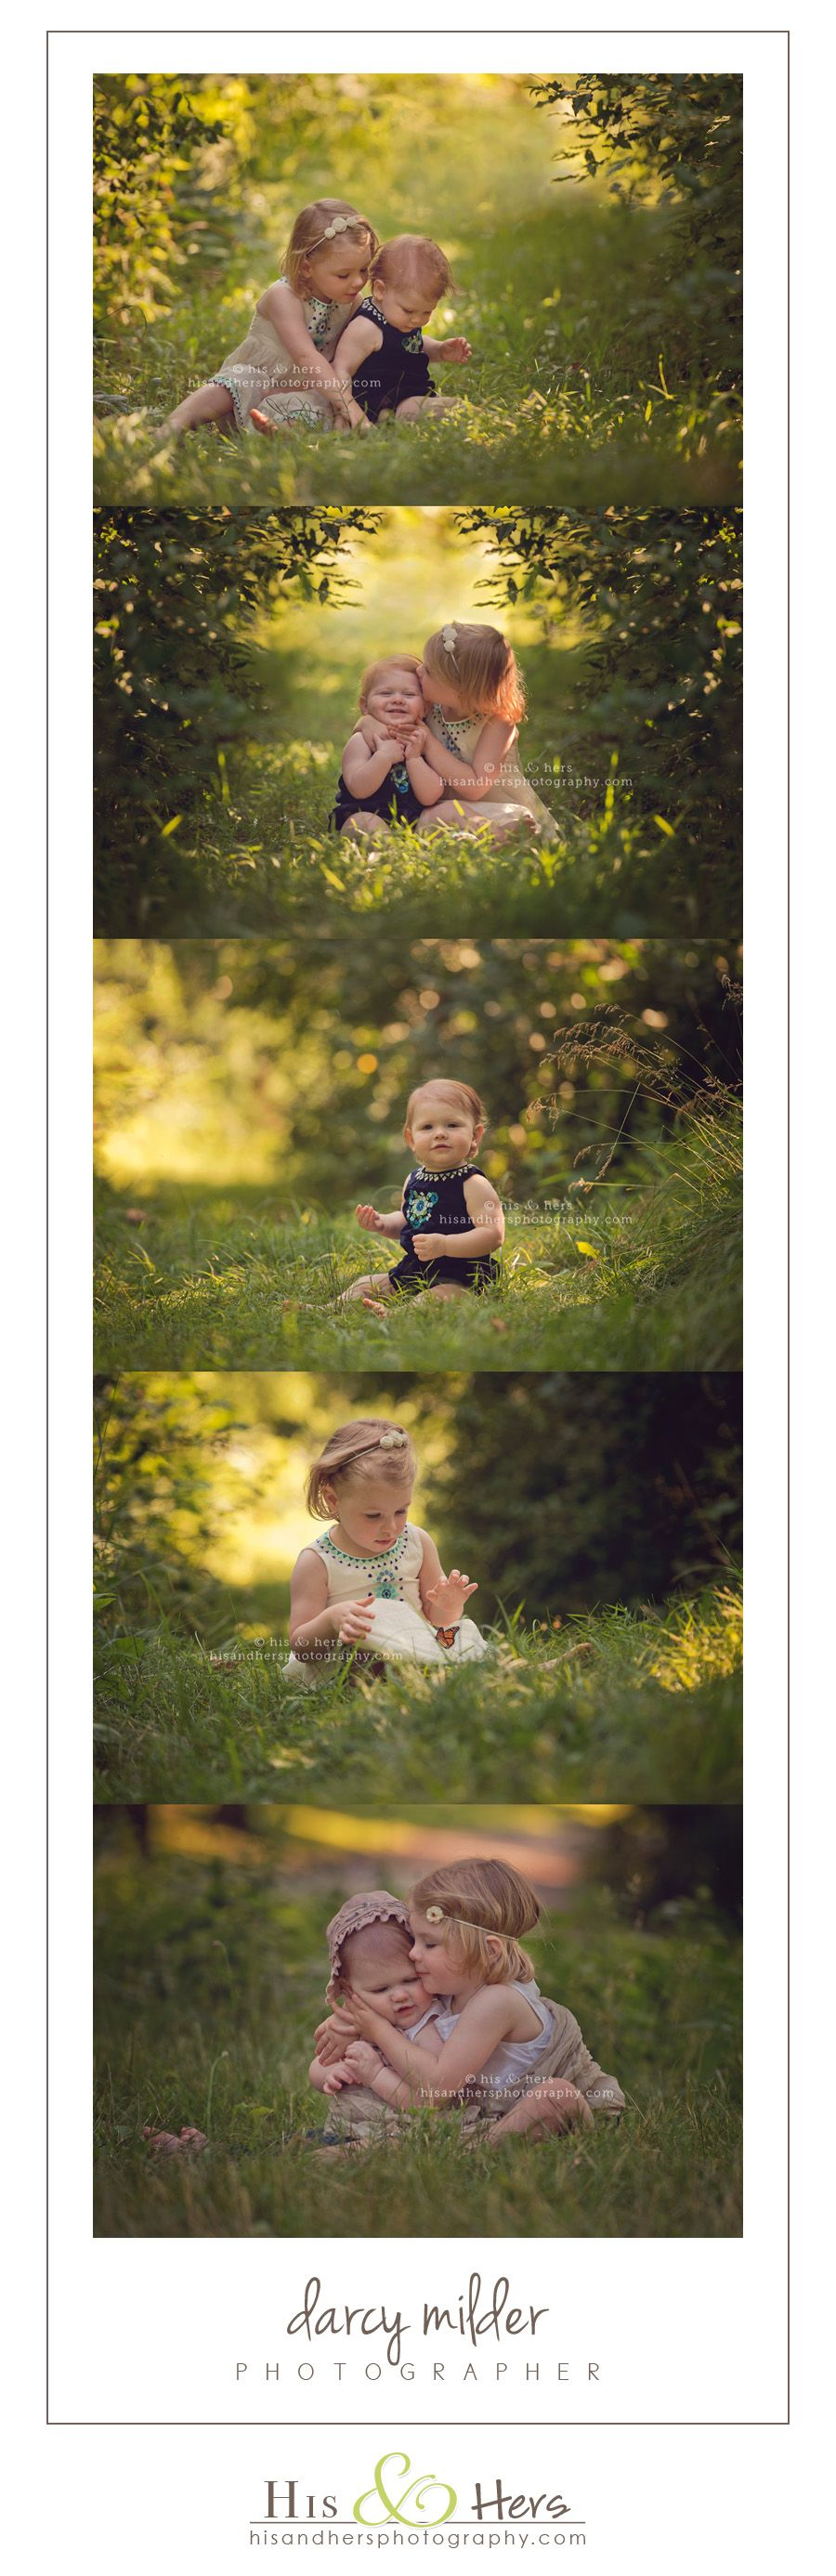 iowa sibling sisters family photographer baby child photographer des moines iowa